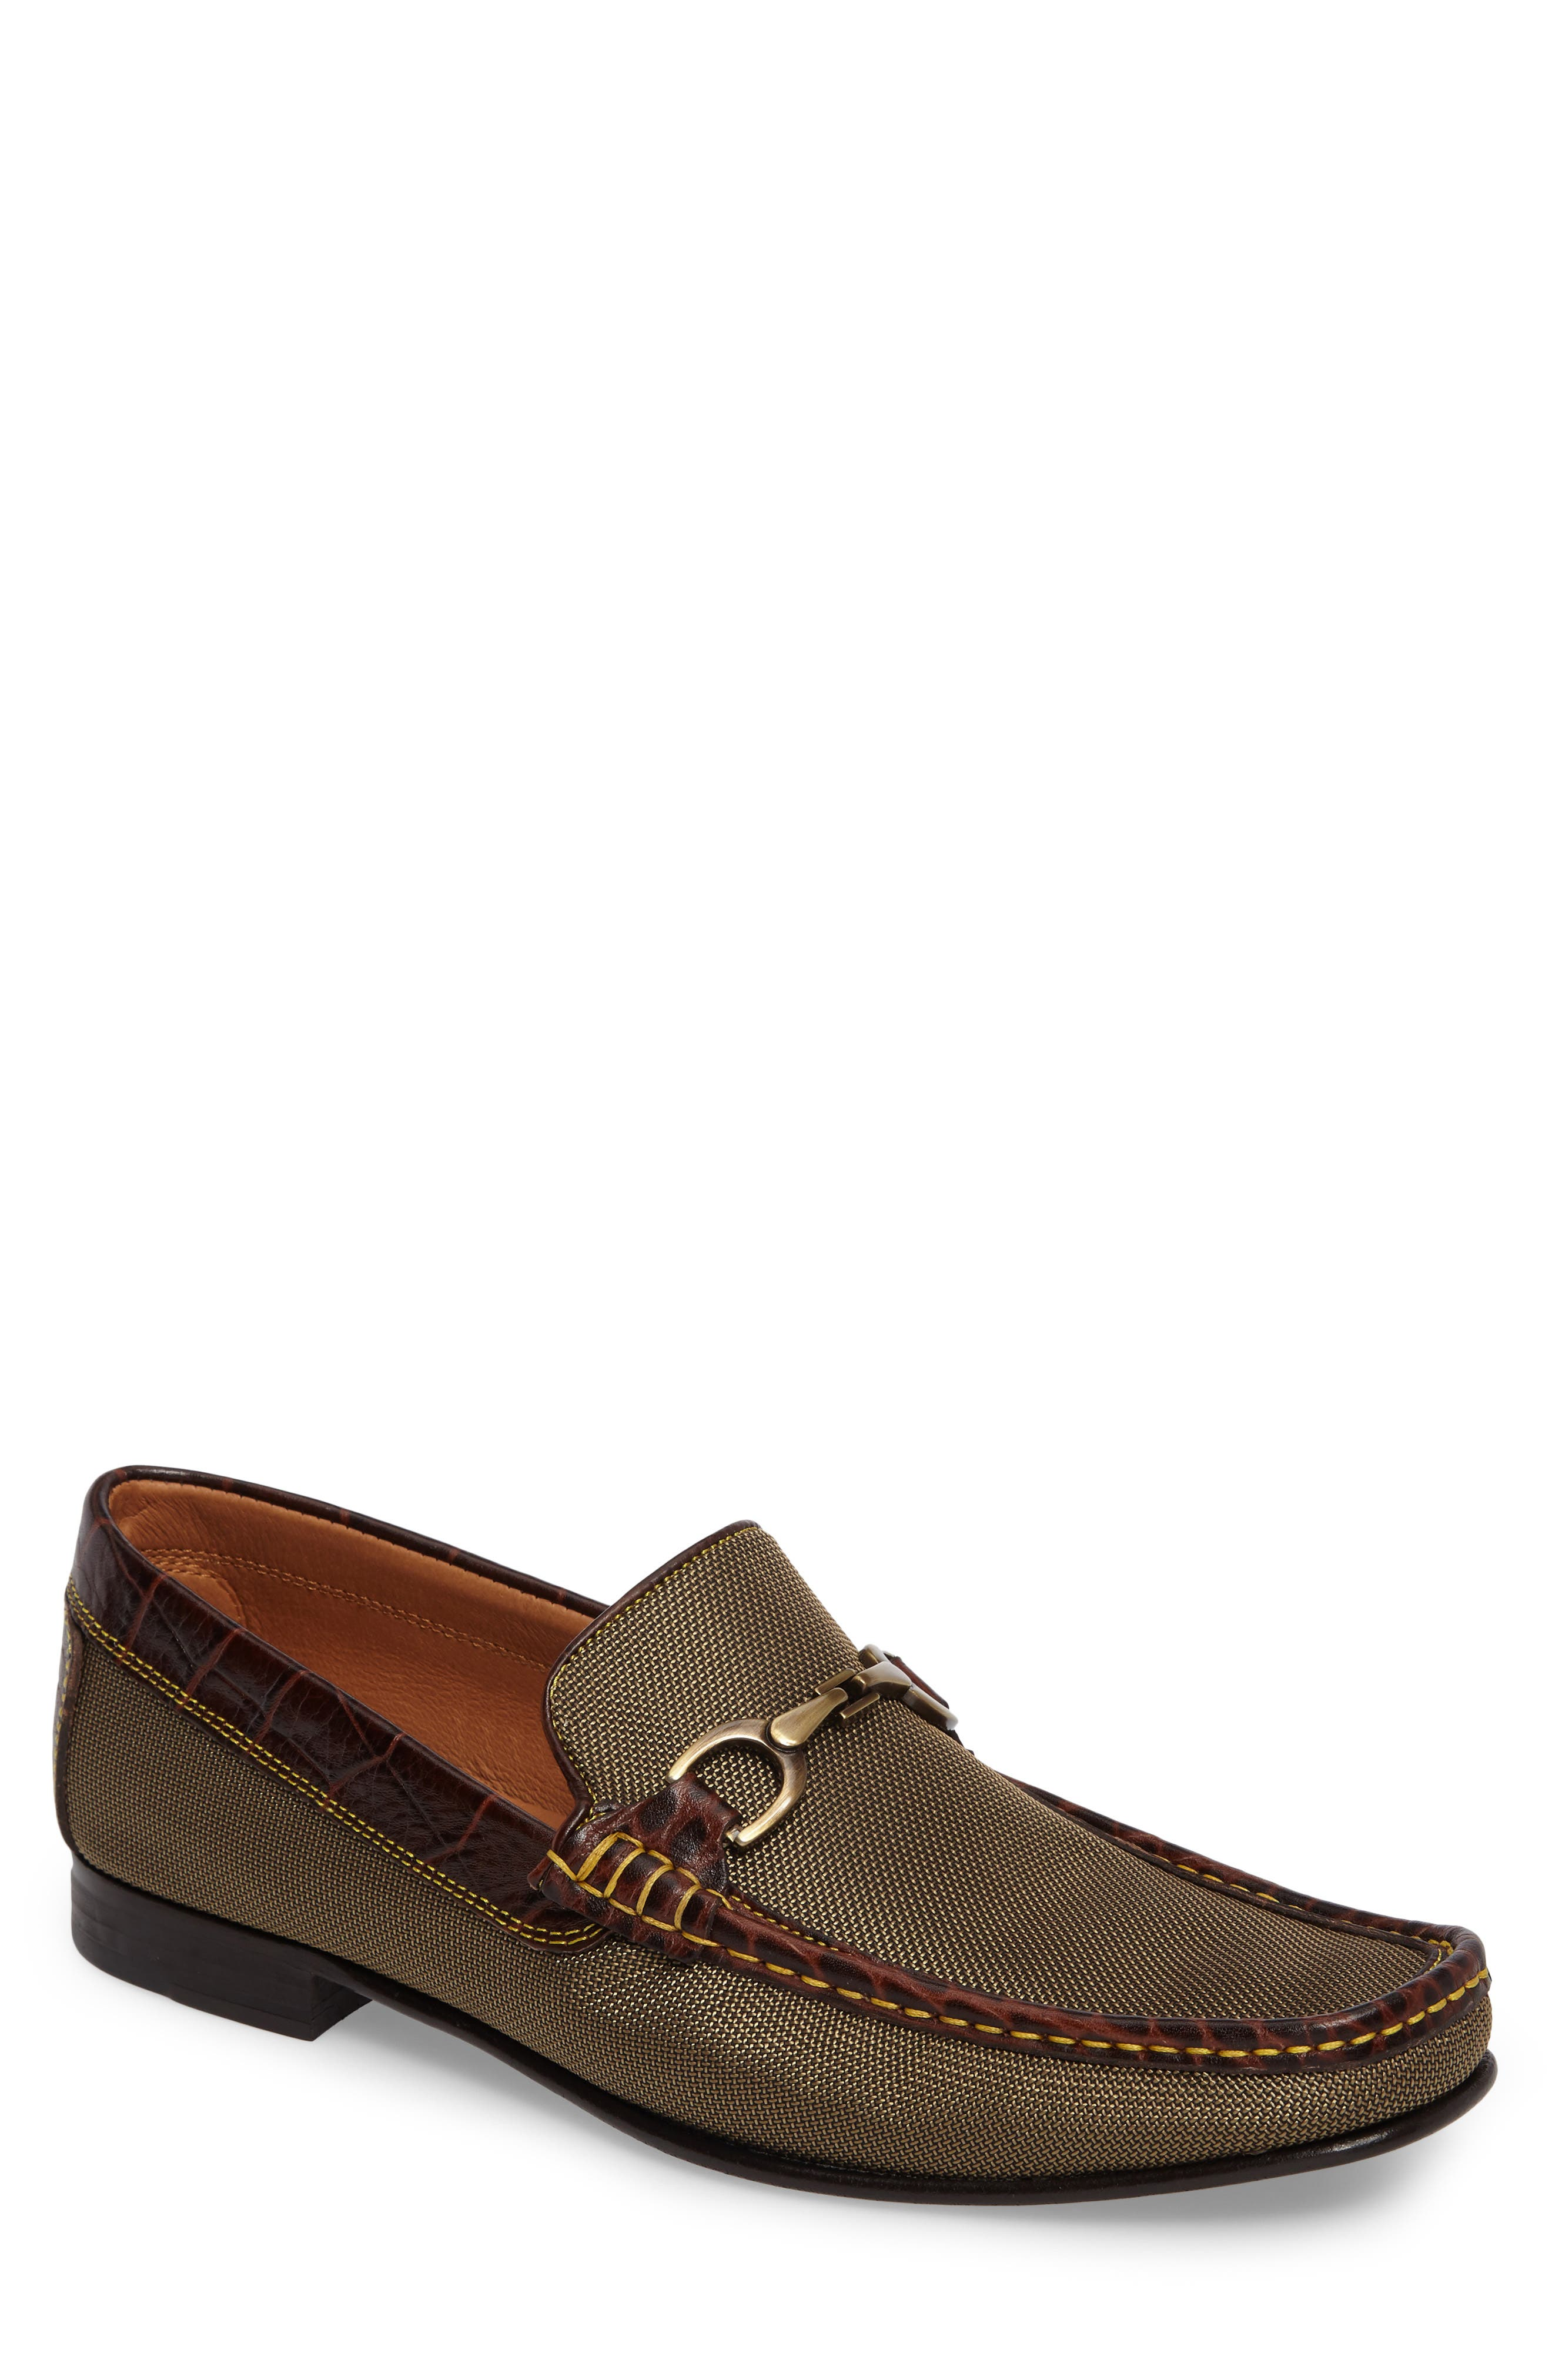 Darrin Embossed Loafer,                             Main thumbnail 1, color,                             Bronze